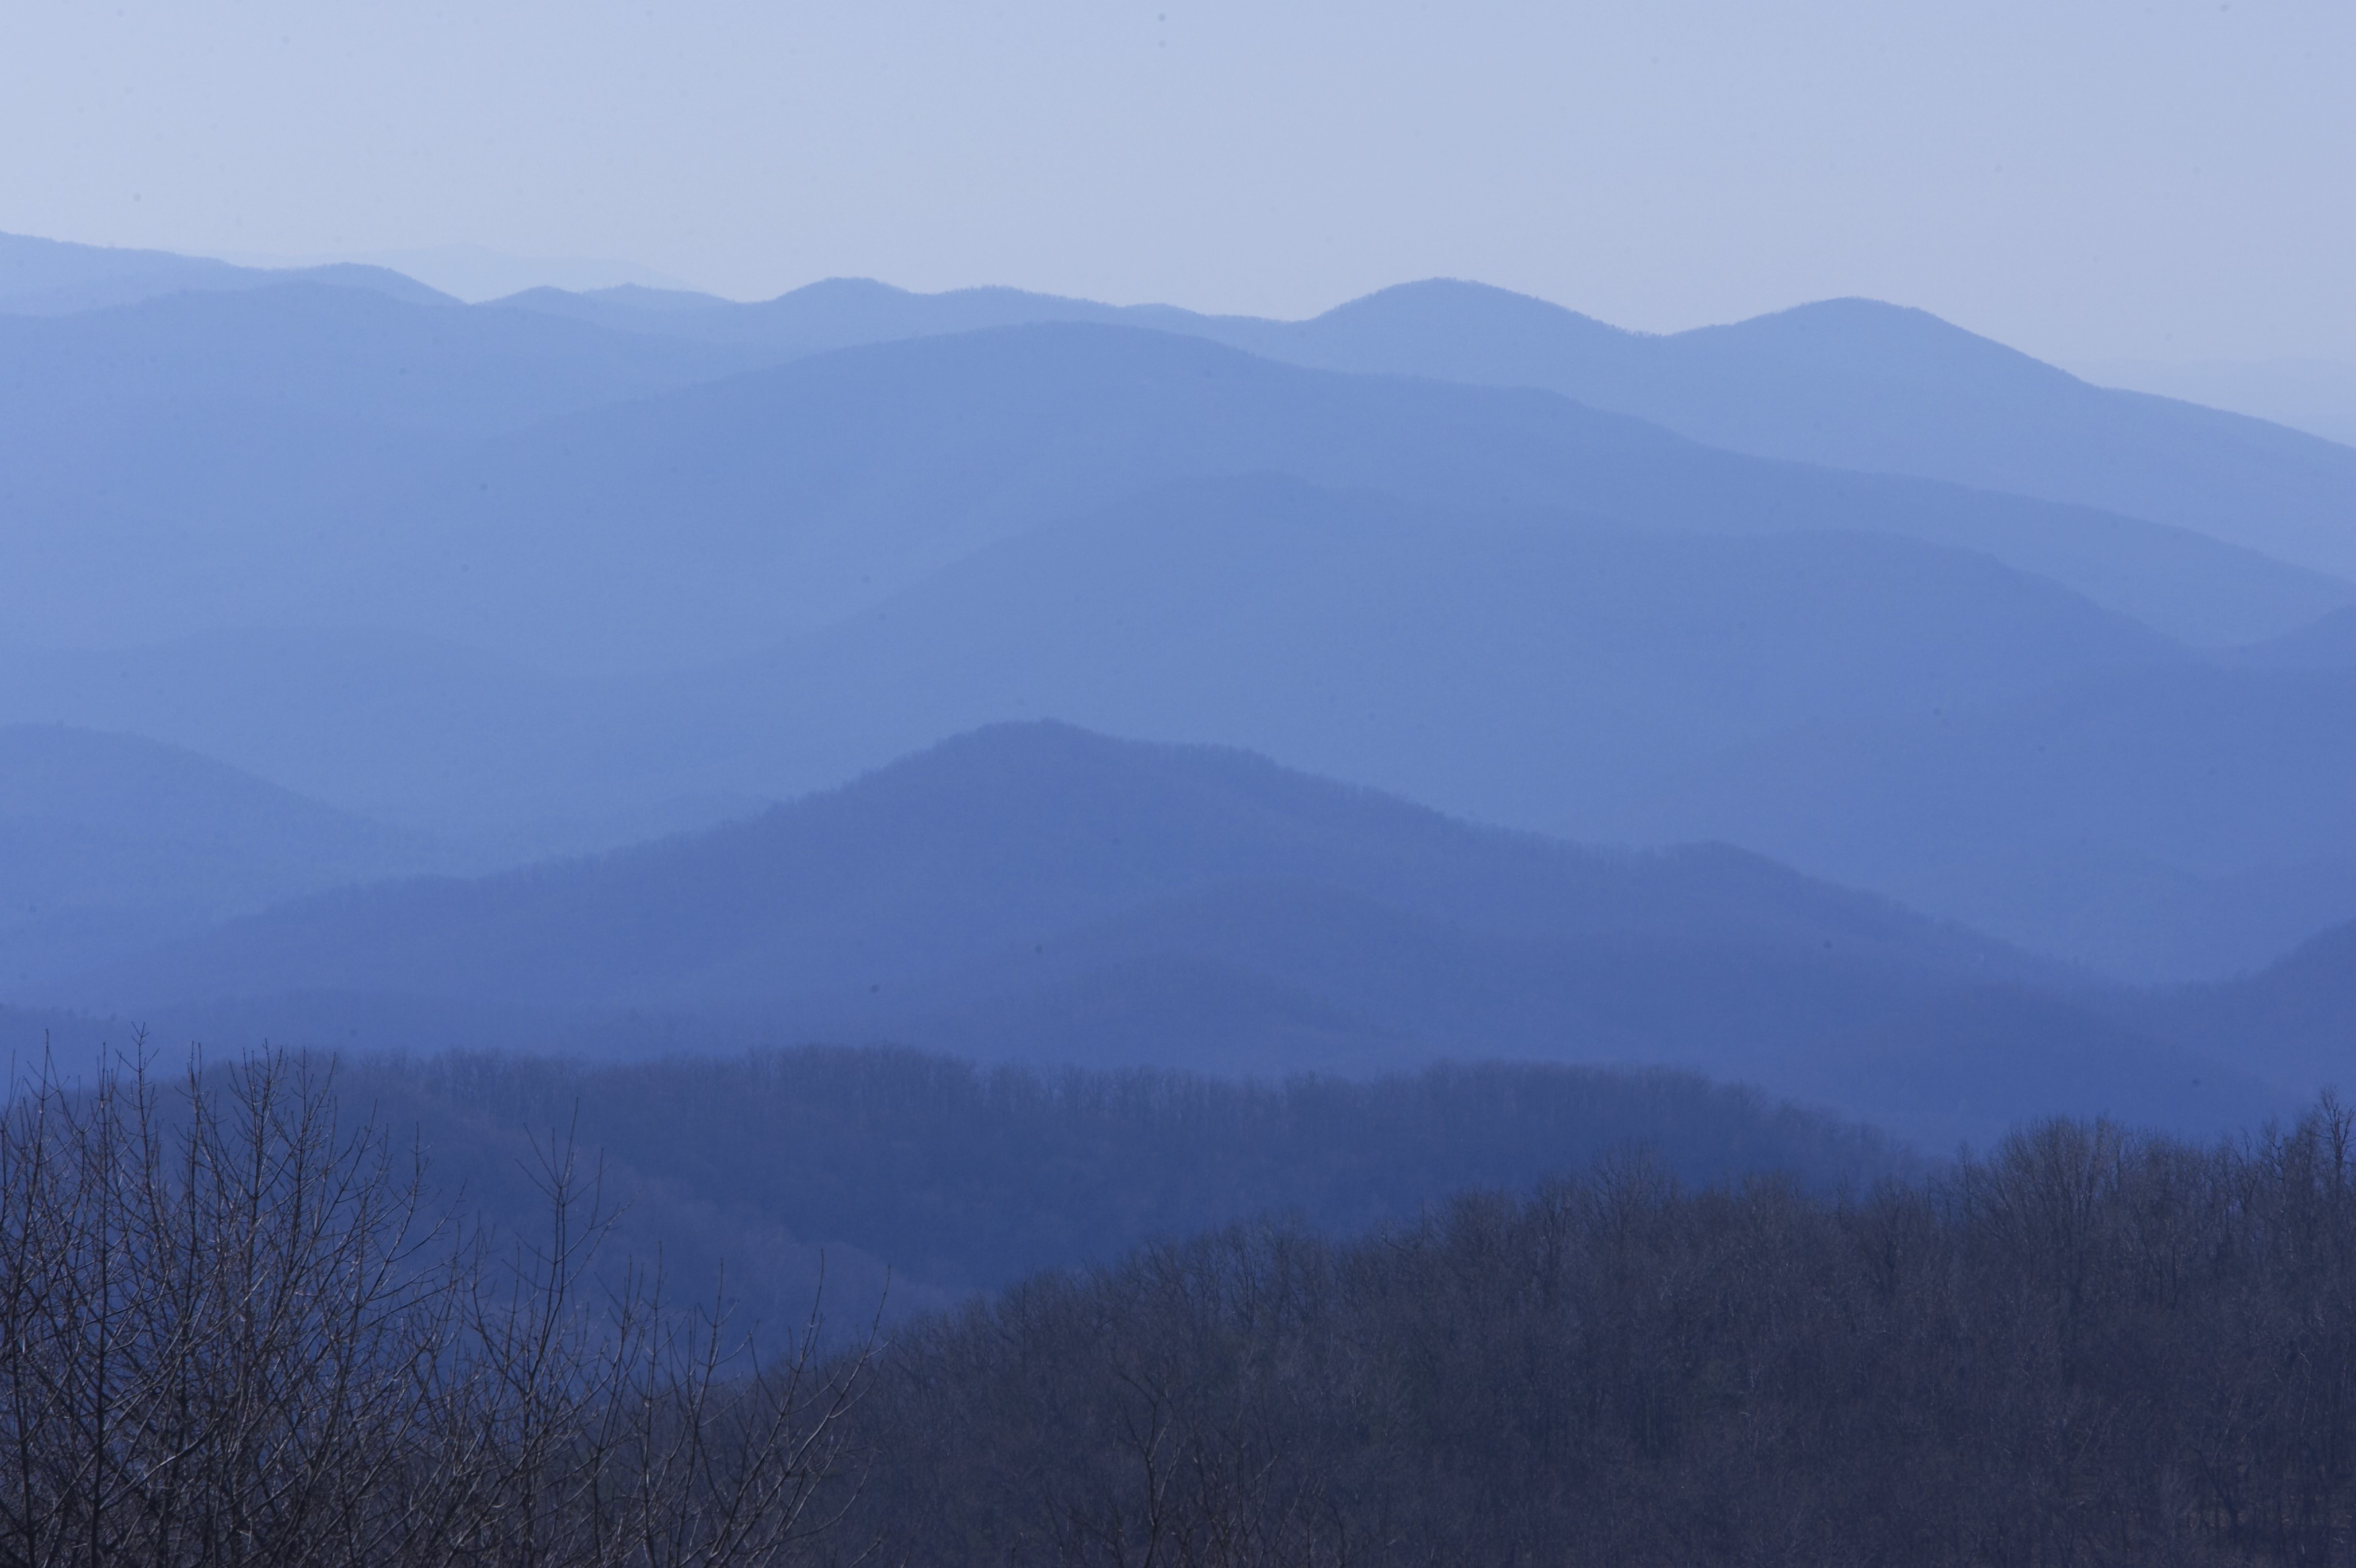 blue ridge mountain views with many shades of blue